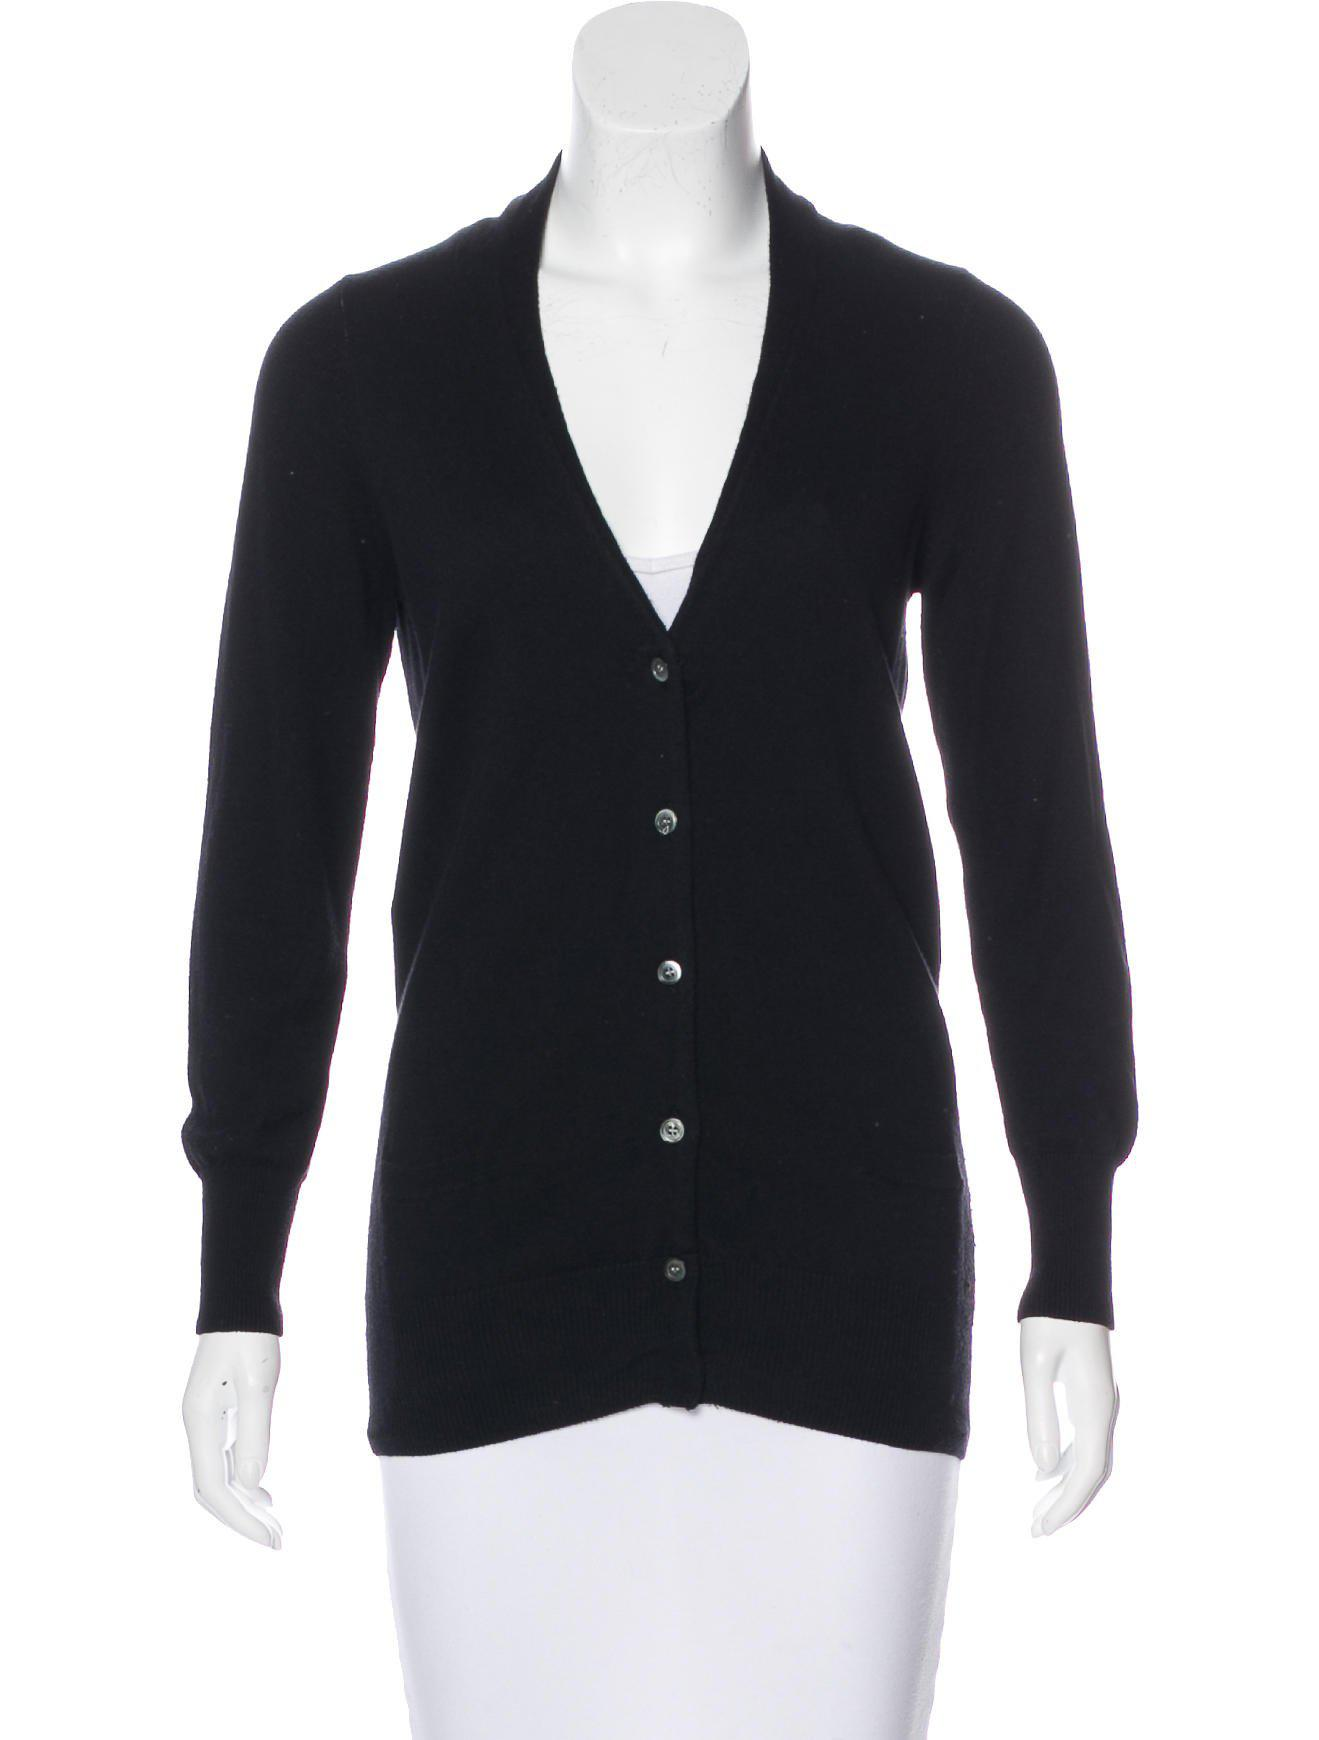 Étoile isabel marant Long Sleeve Button-up Cardigan in Black | Lyst